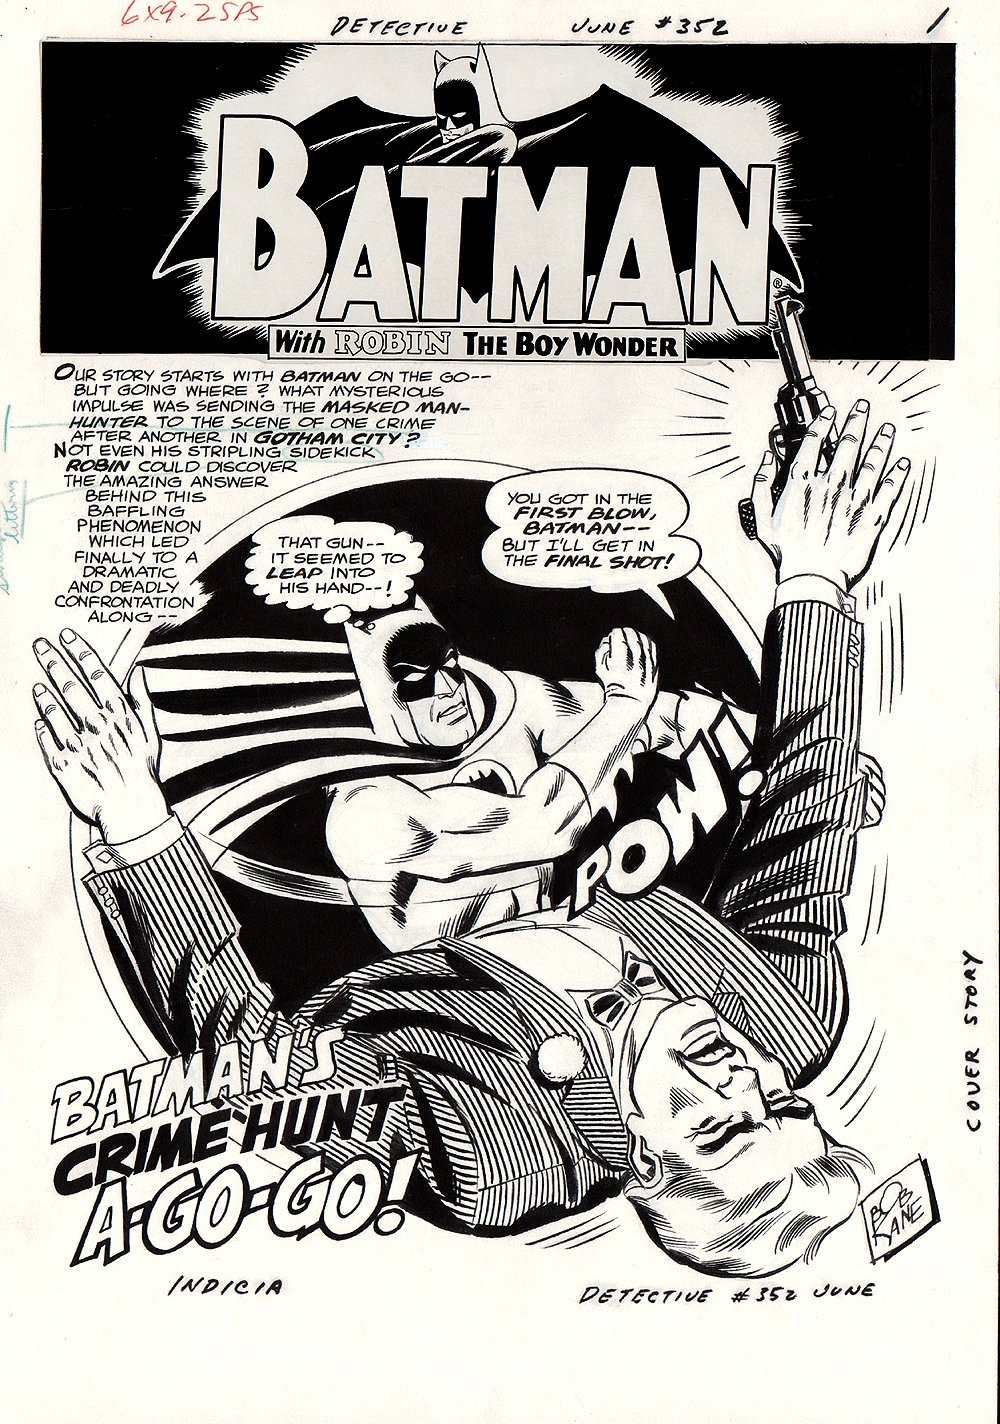 Detective Comics #352 p 1 SPLASH (Large Art) 1966